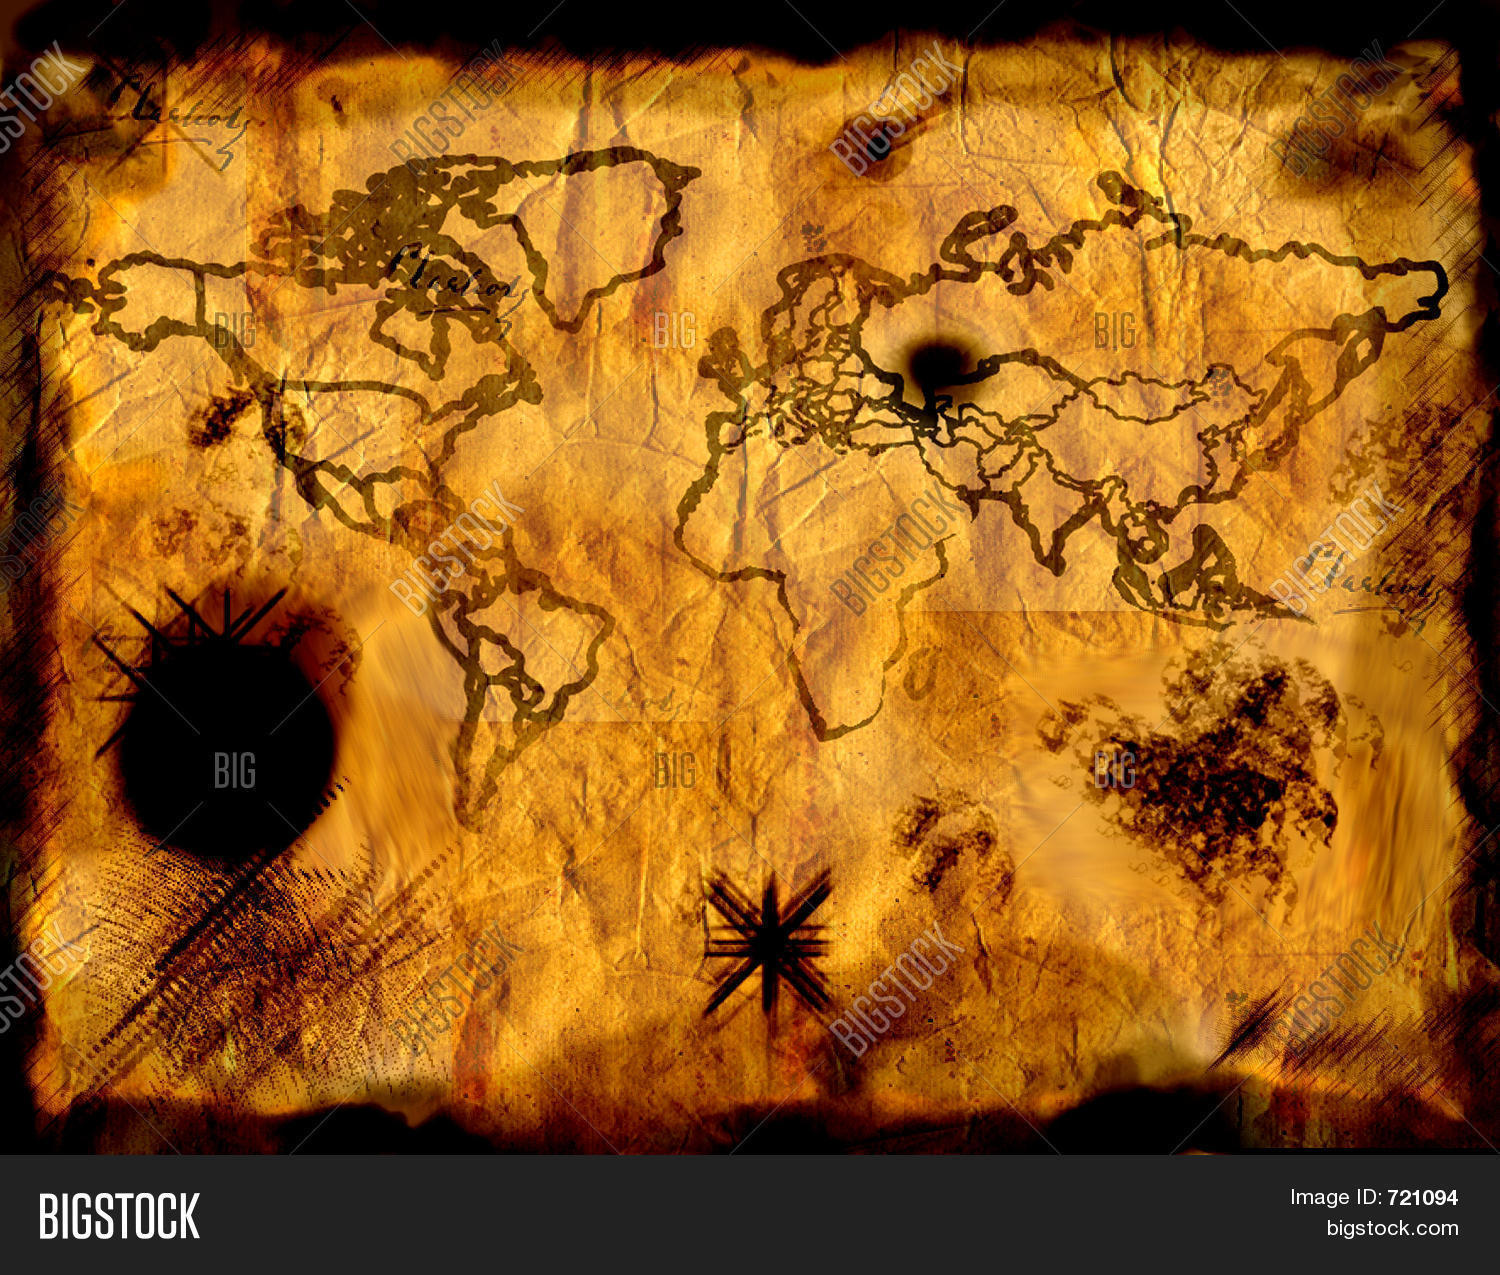 Pirate World Map.Pirate Old World Map Image Photo Free Trial Bigstock